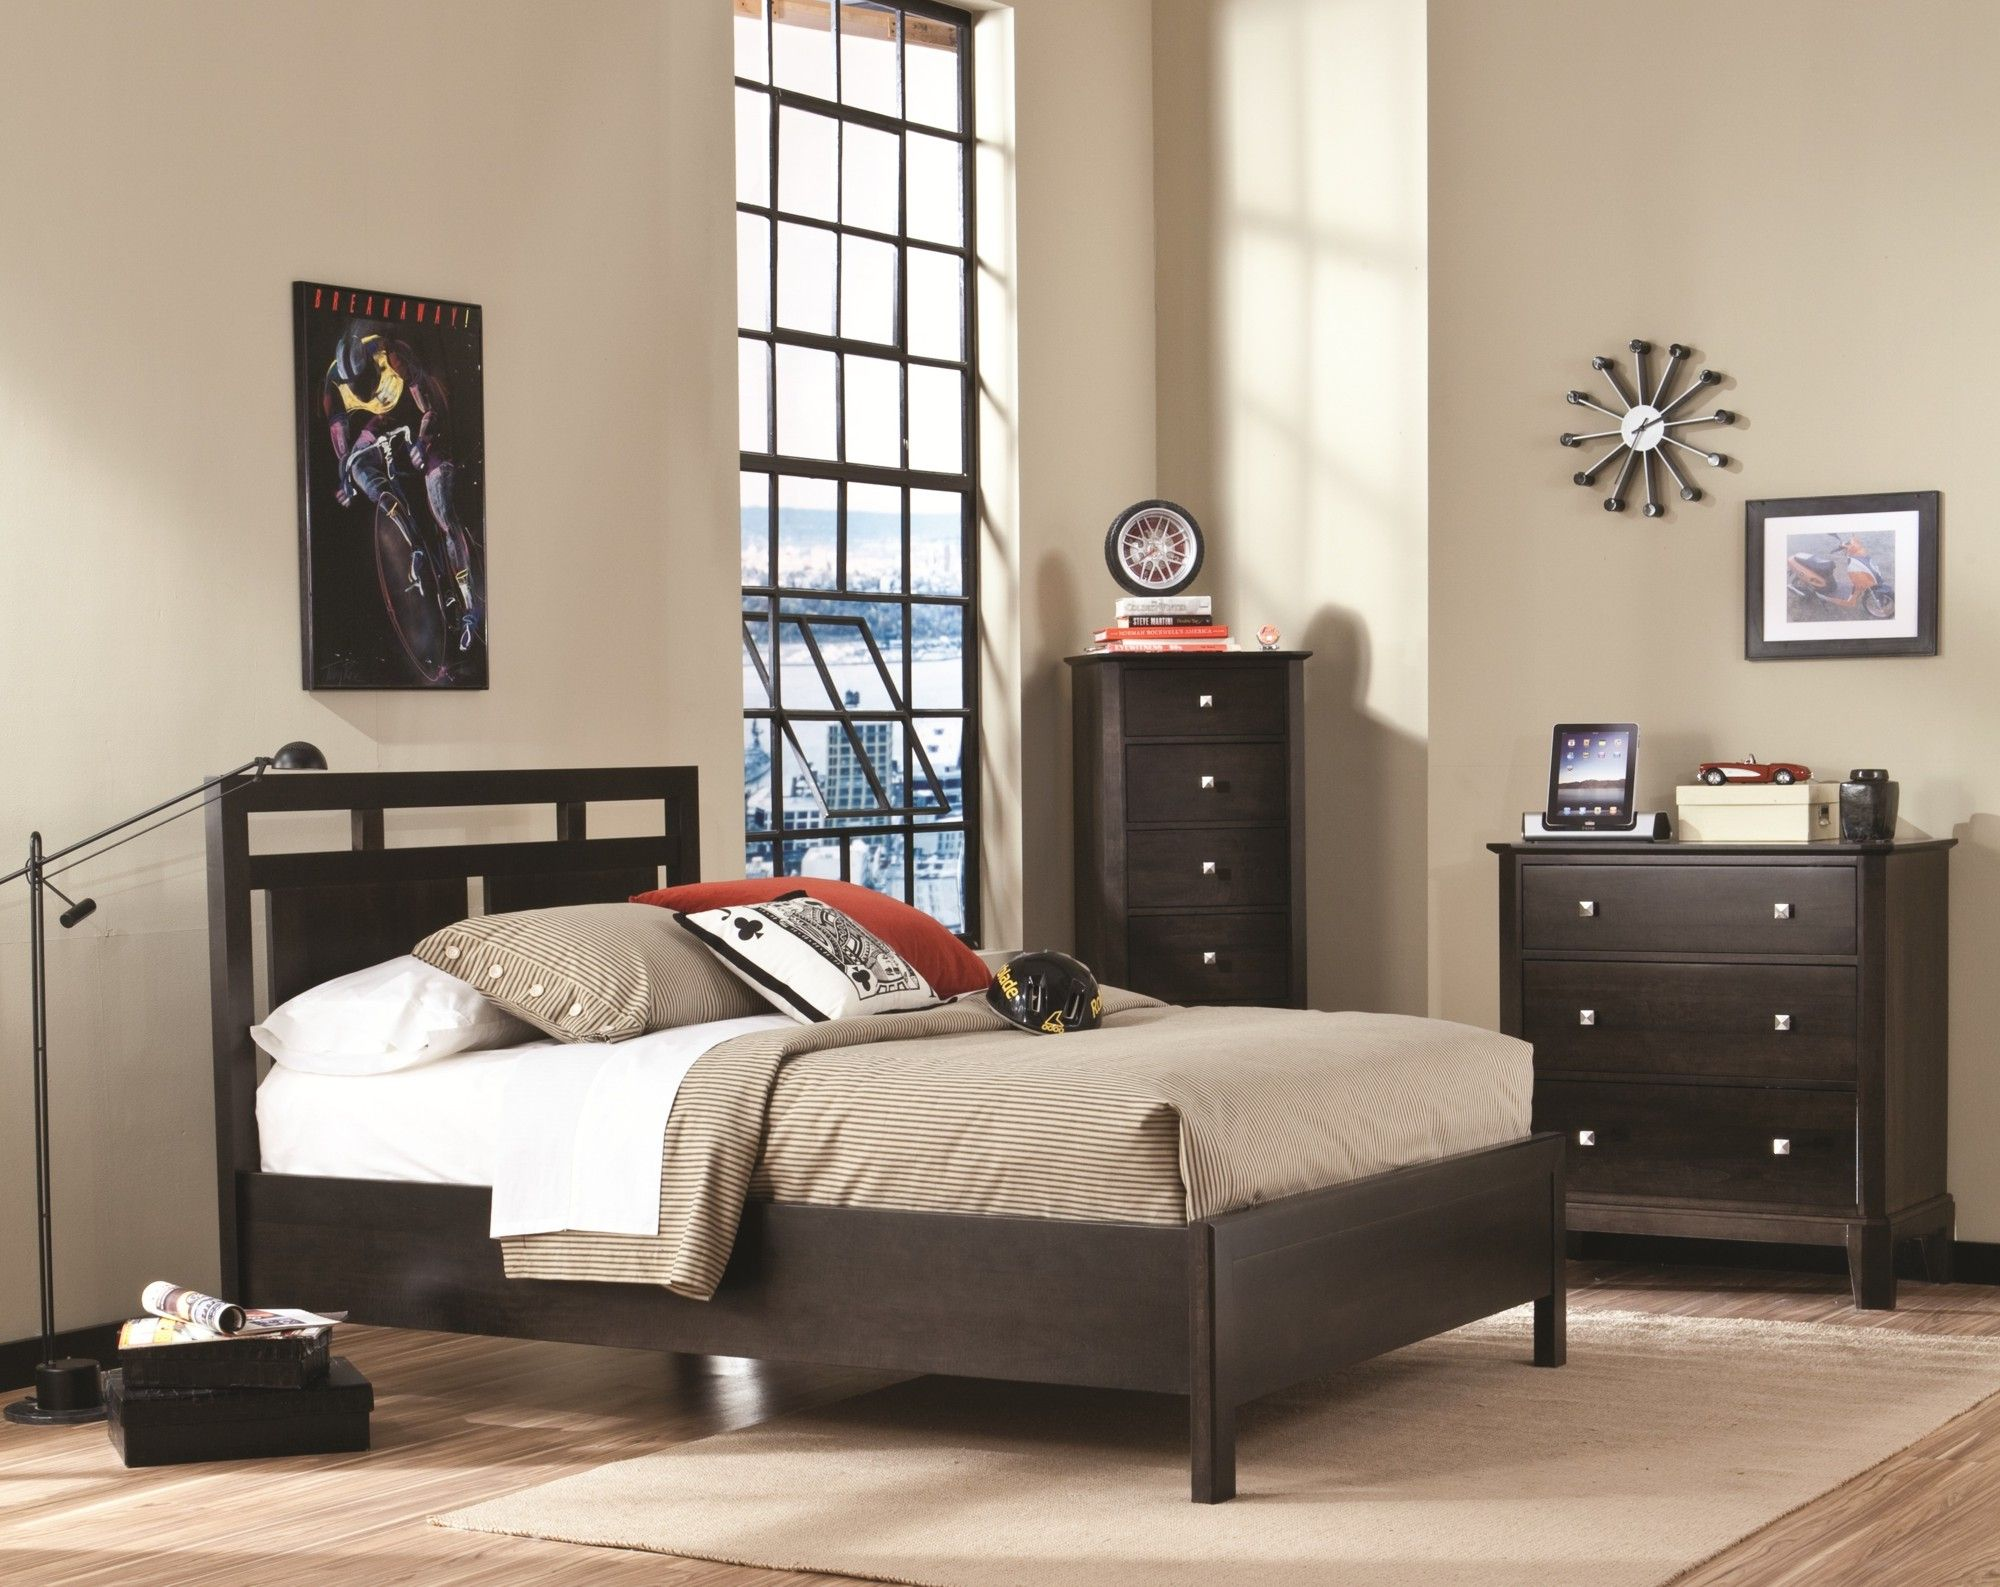 perfect balance urbane collection contemporary bedroom 16259 | 323435b400ea83de3fdb5bfddd394971